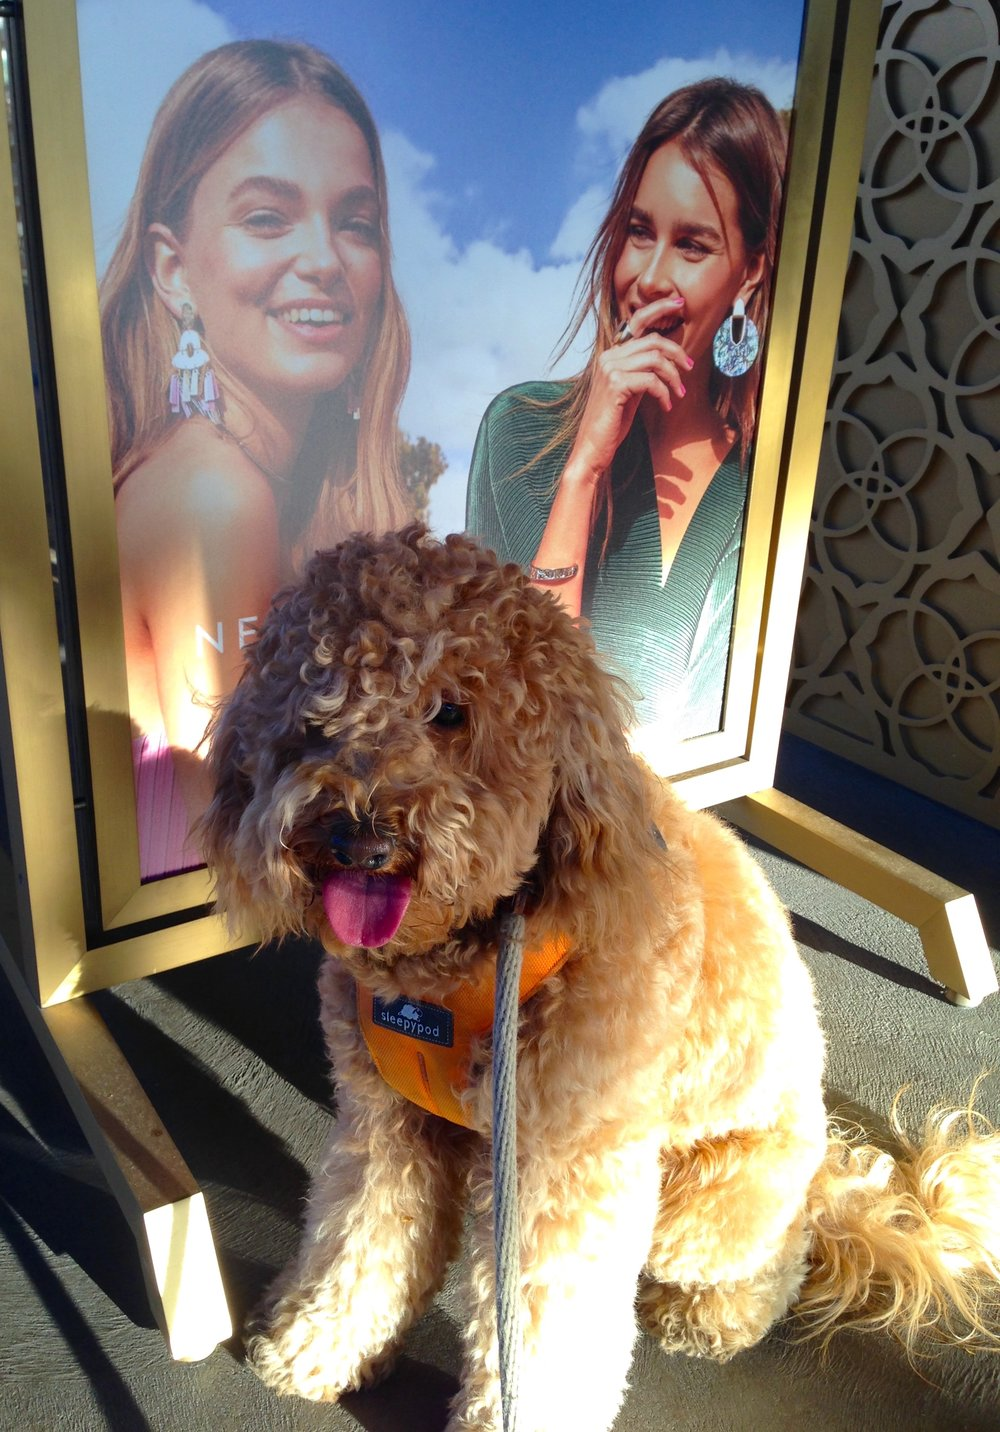 Labradoodle Lizzie McSquare sits in front of a shop sign featuring two young models at La Encantada Shopping Center.